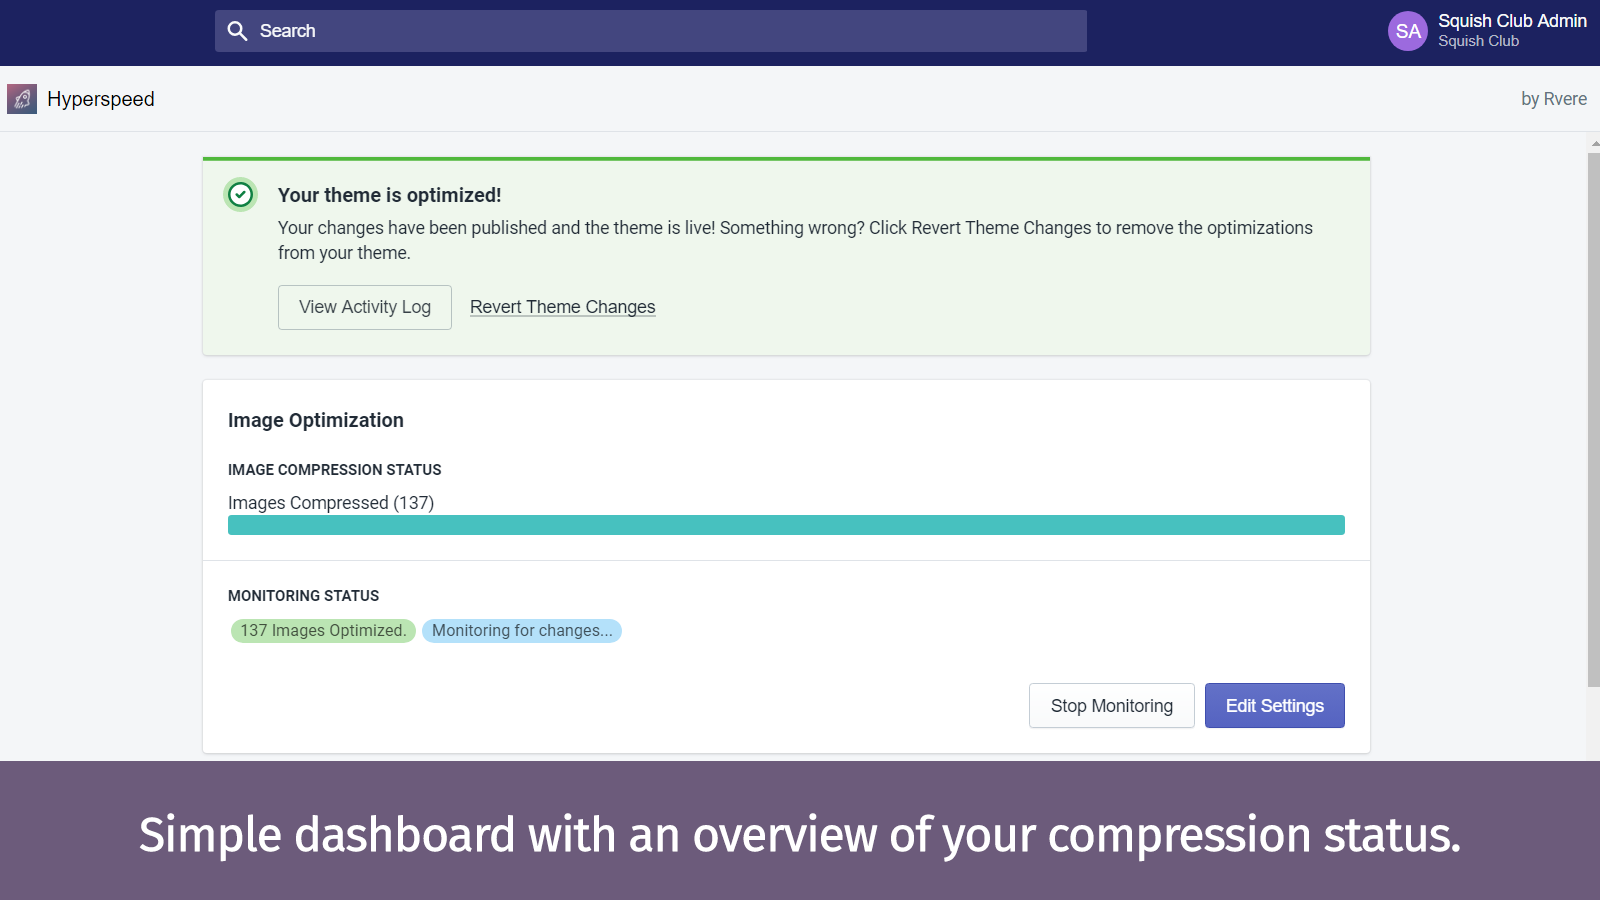 Simple dashboard with an overview of your compression status.